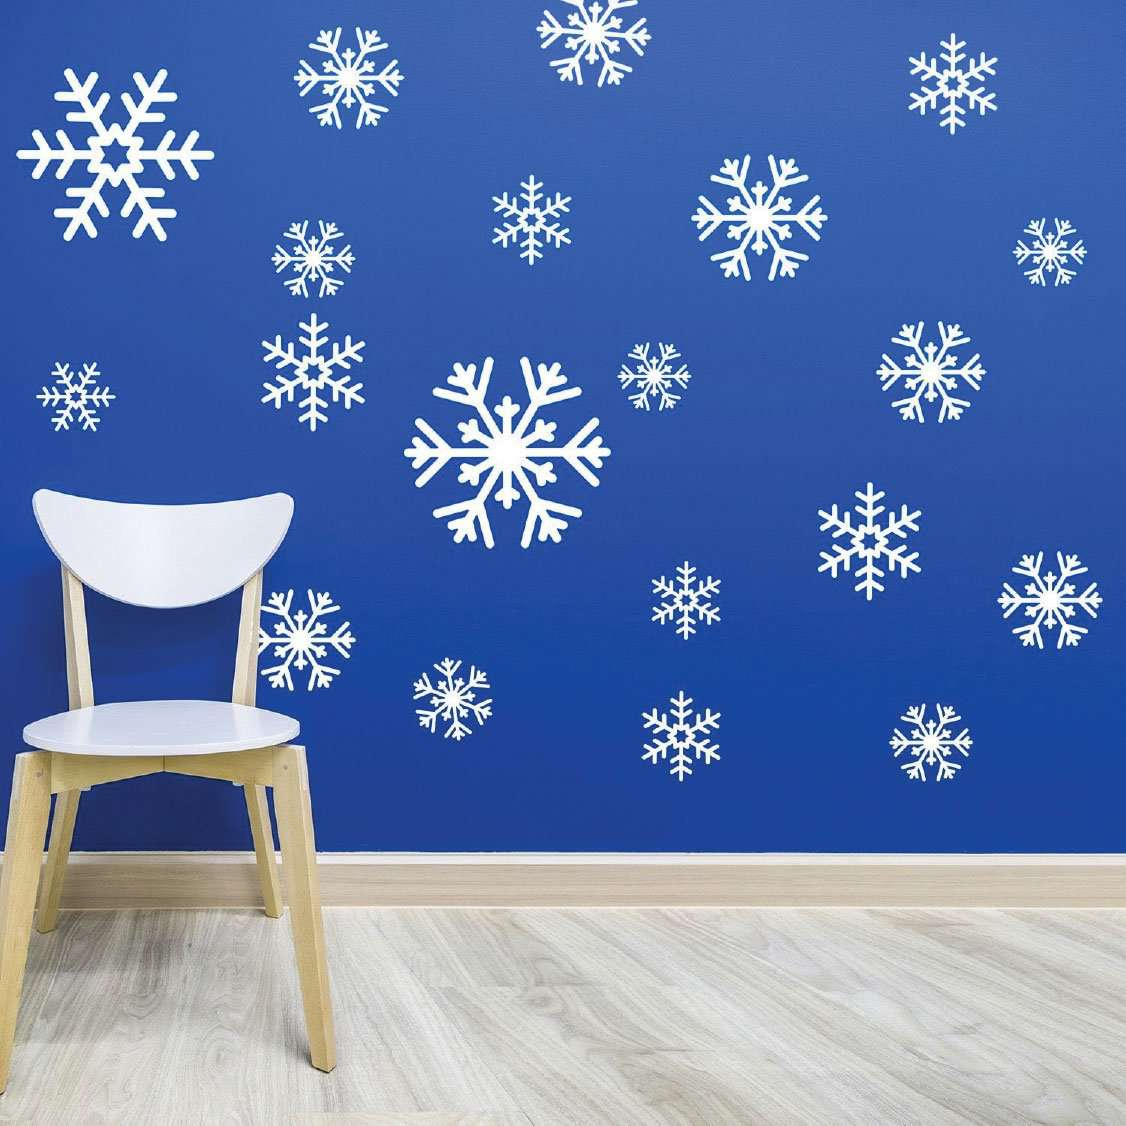 Snowflake Decal Sticker Variety Pack   Winter Holiday Decor